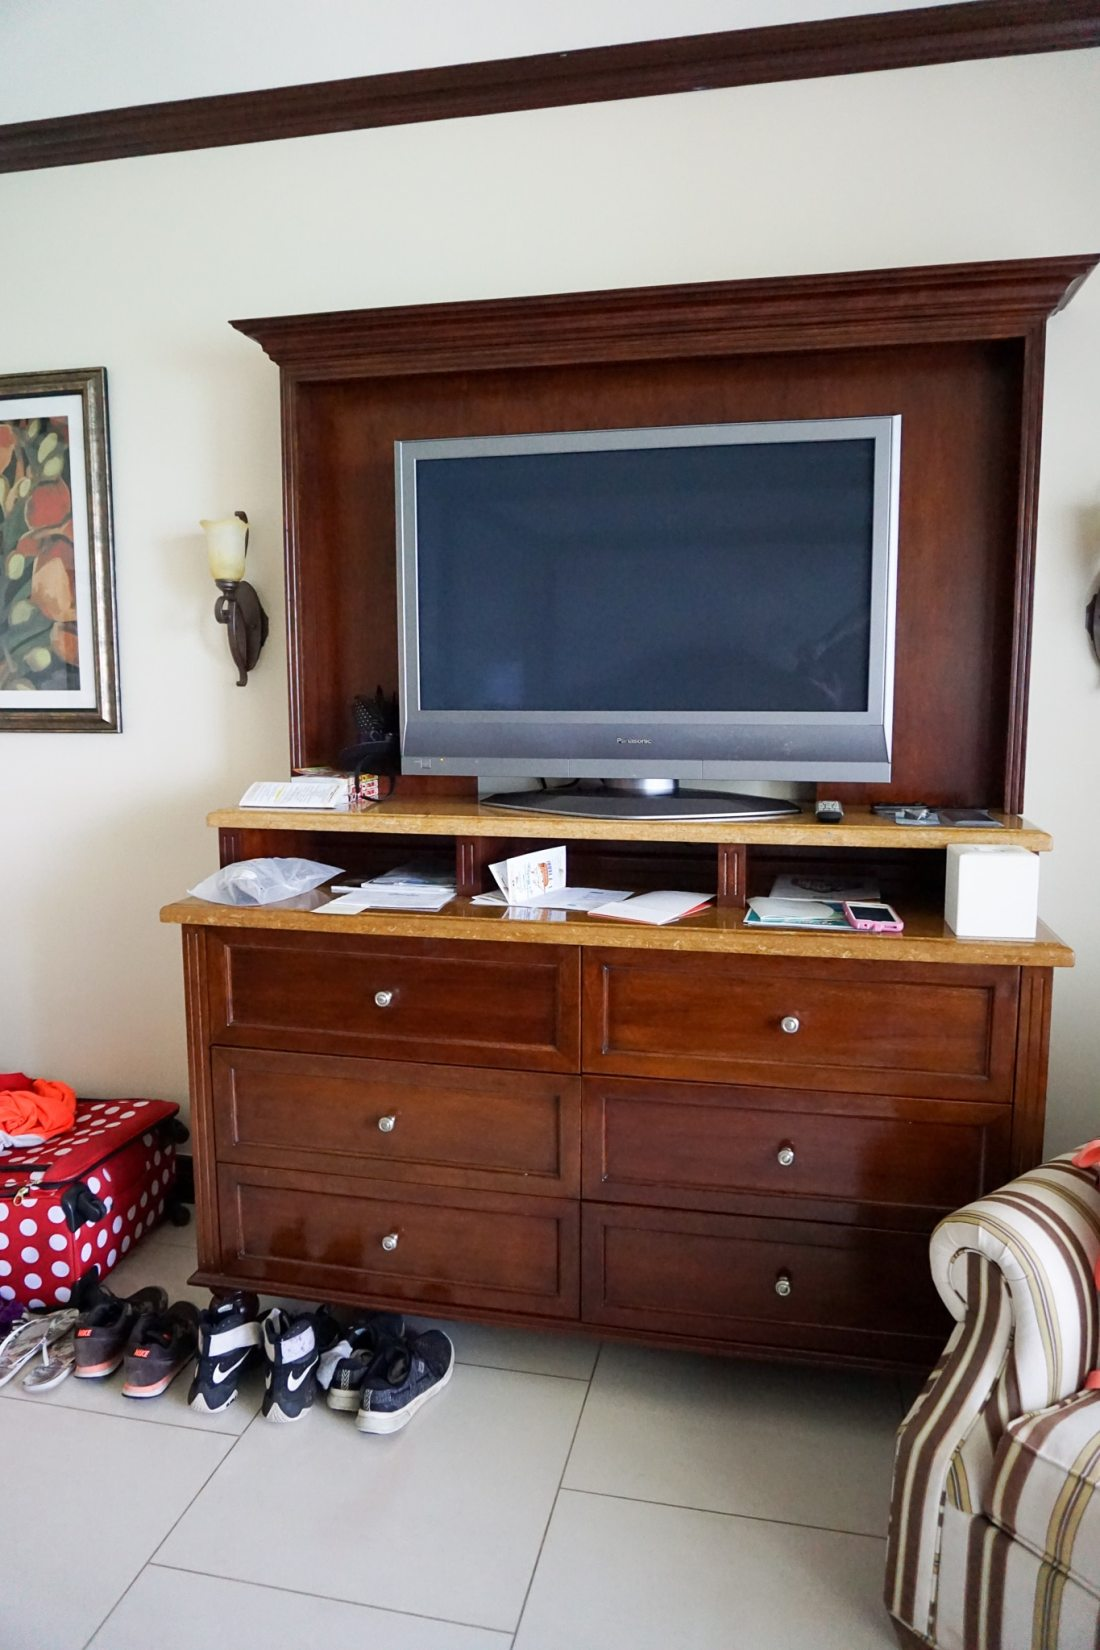 Oceanfront Family Suite Beaches Resorts in Turks and Caicos Entertainment Center. Paradise does exist, and it's only a plane ride away. Take a look inside our suite in this Oceanfront Family Suite Room Tour at Beaches Resorts in Turks and Caicos.